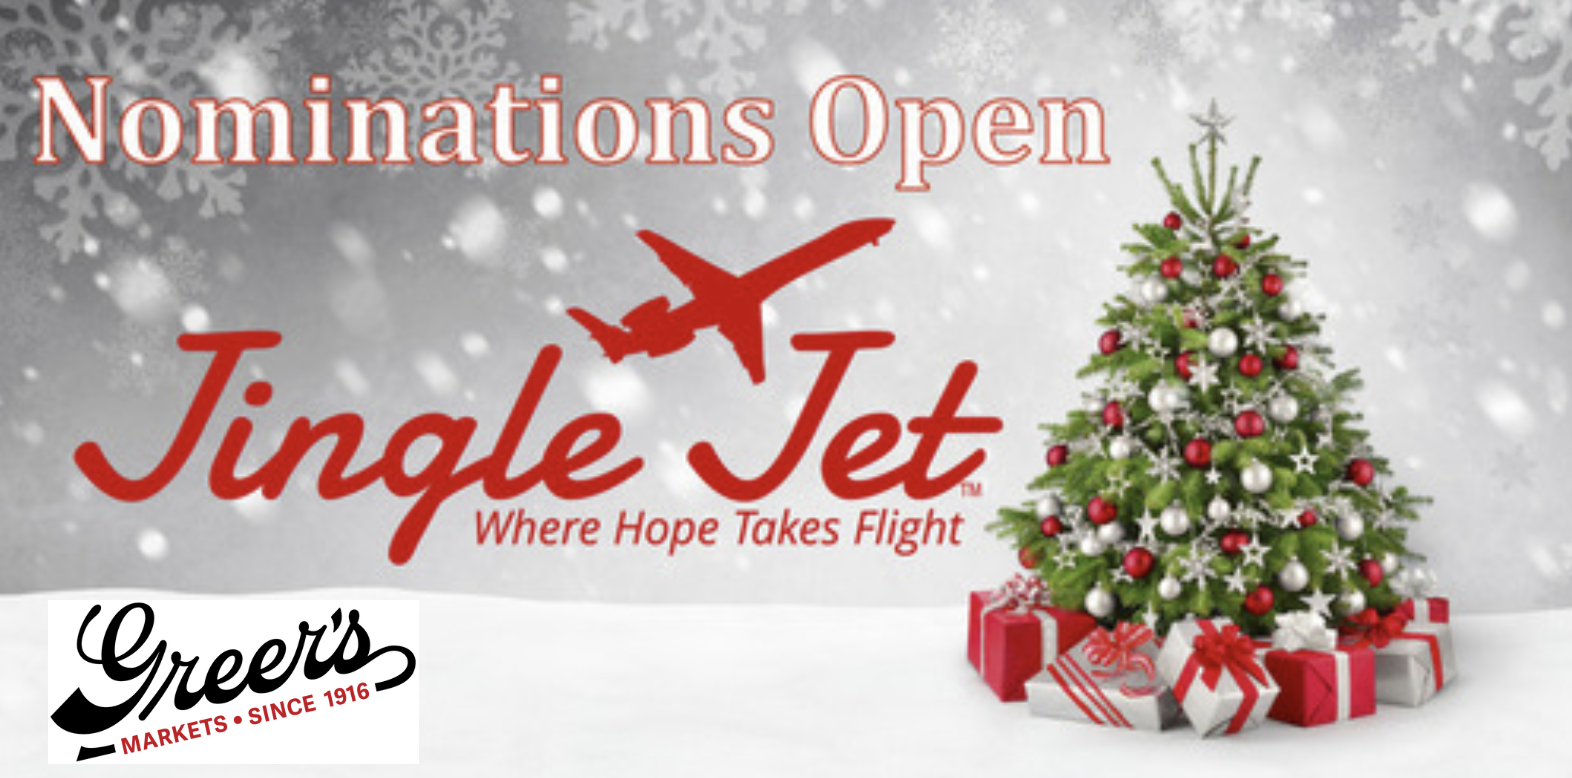 Jingle Jet sponsored locally by Greer's Markets!